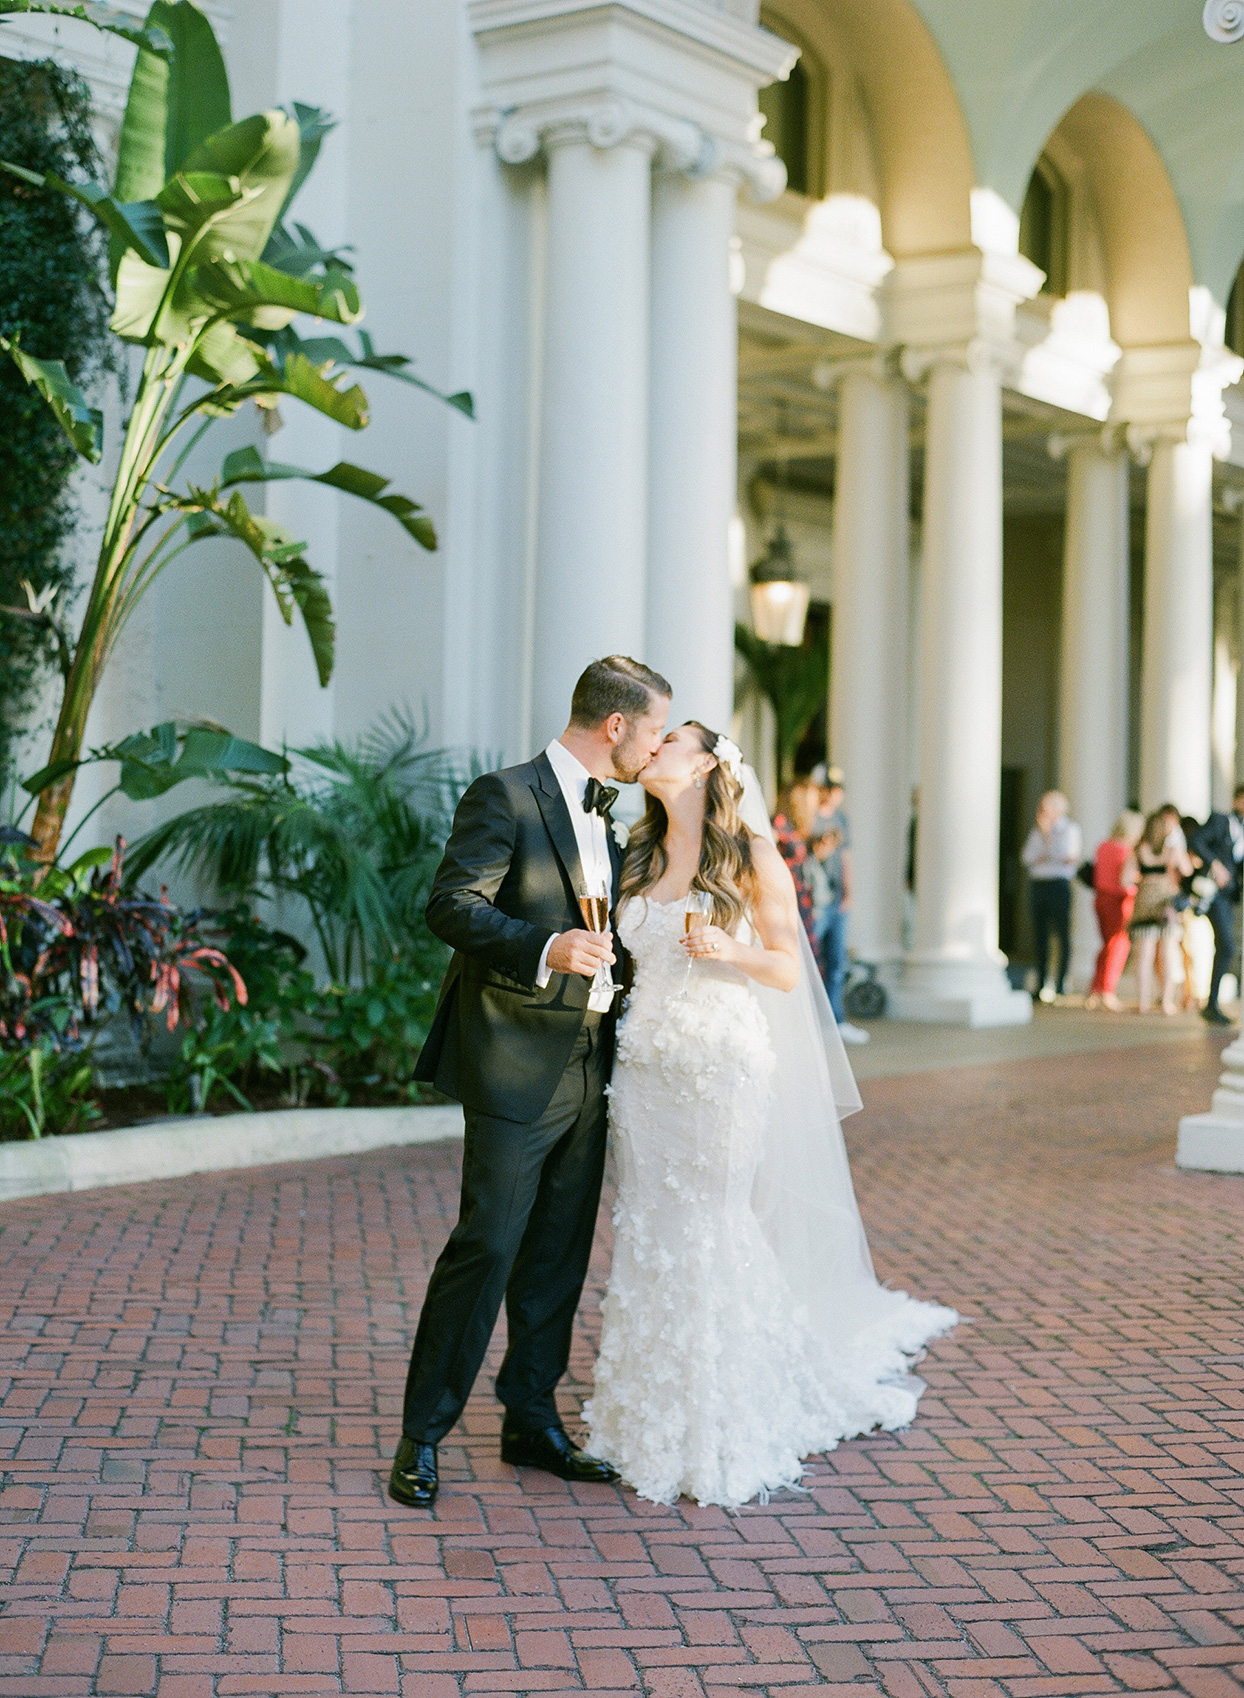 brittany brian wedding couple kissing outside on brick road